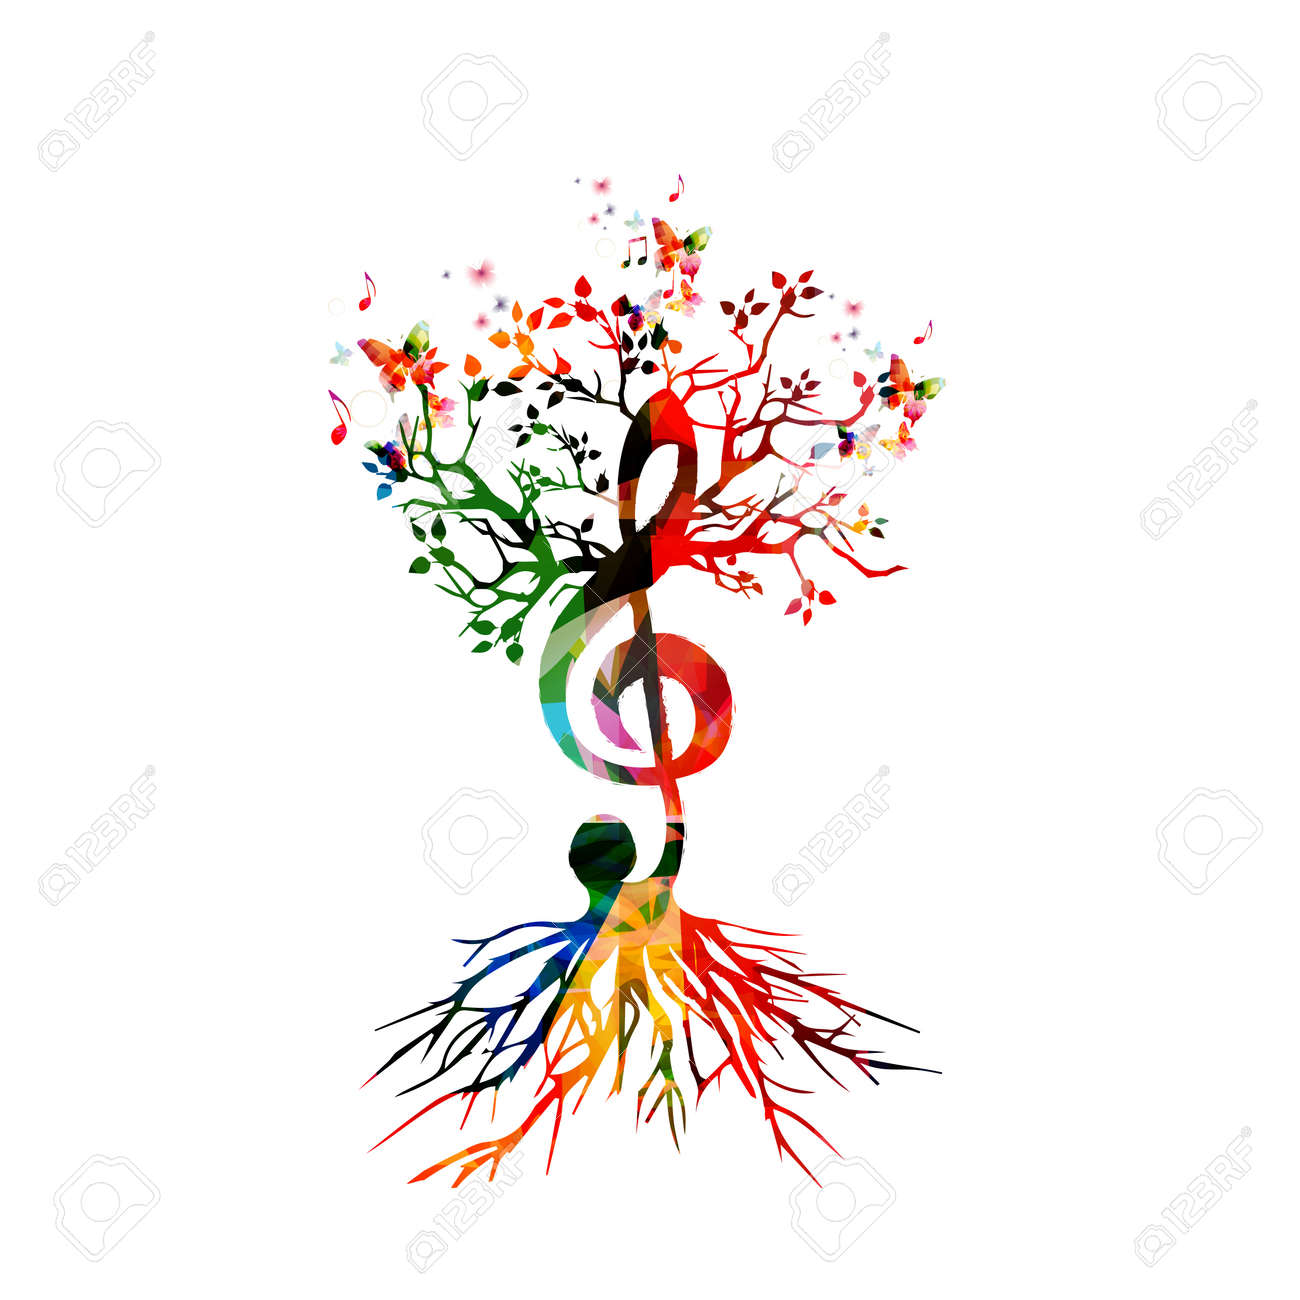 Colorful background with music notes - 50243074